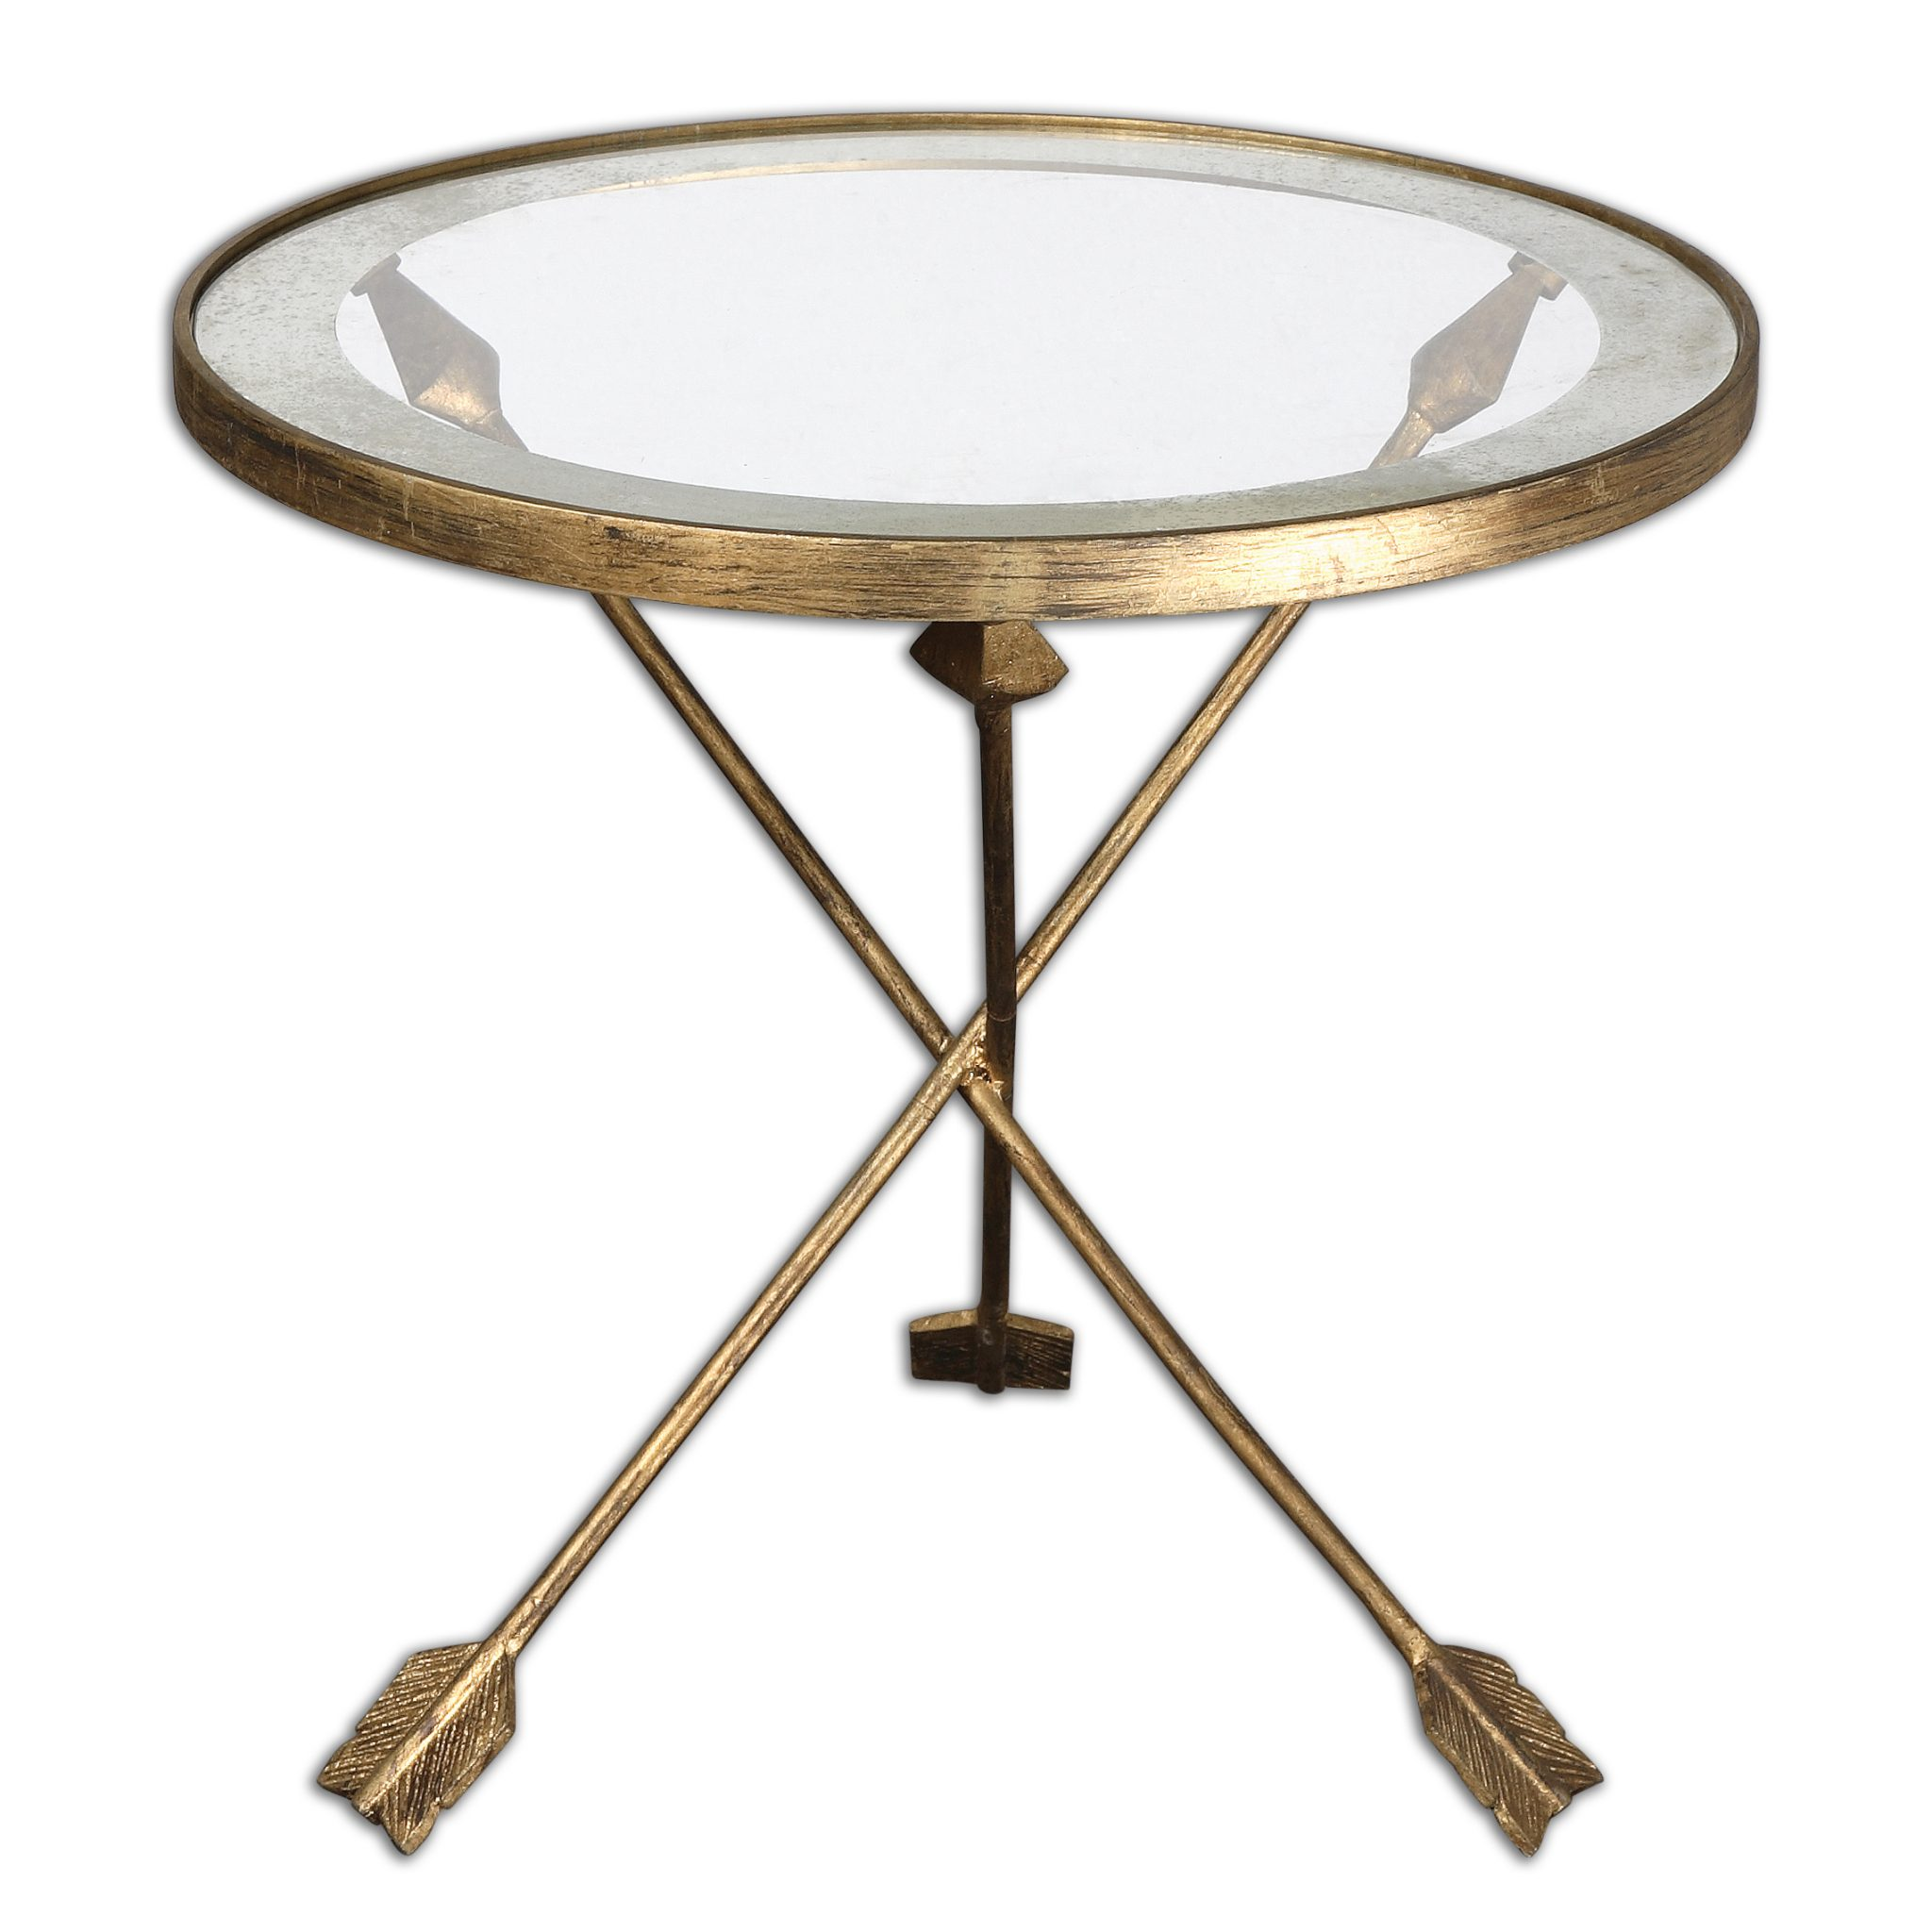 aero glass top accent table furn metal with marble stone coffee gray round side battery operated indoor lamps gold bamboo ikea bathroom storage monarch specialties console wood